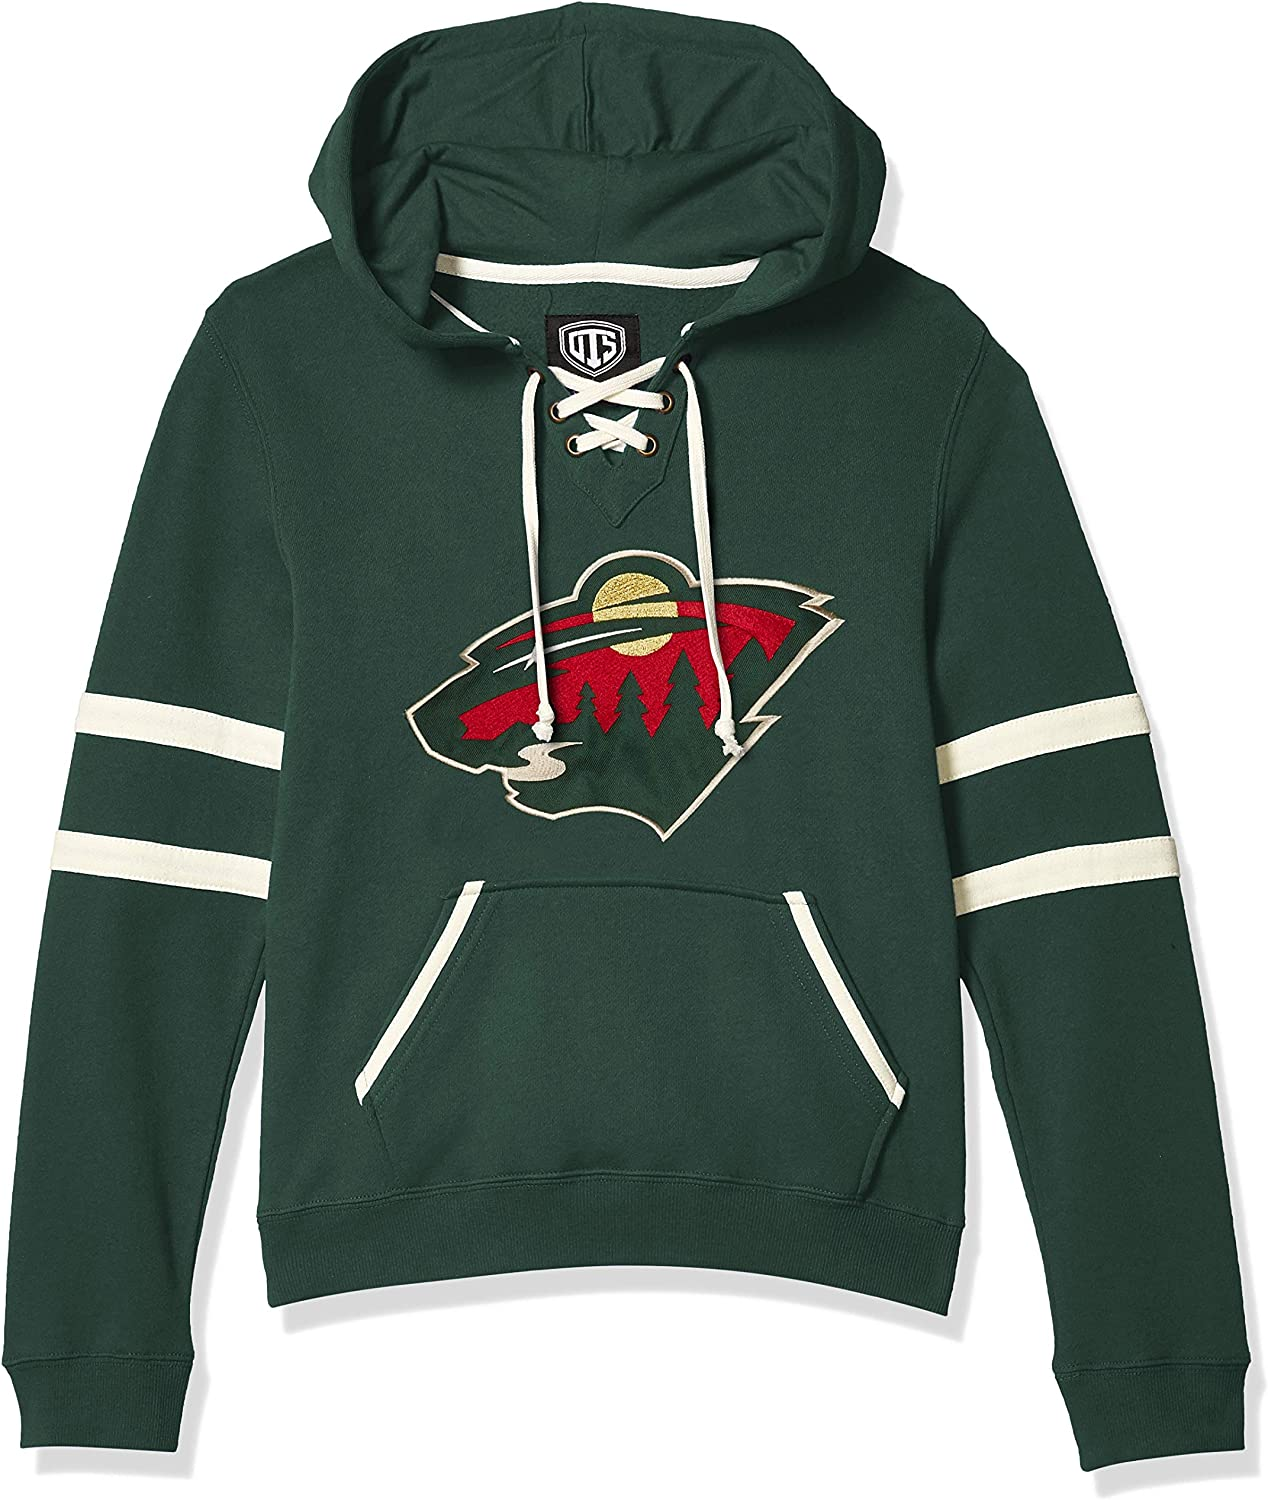 OTS Womens Grant Lace Up Pullover Hoodie